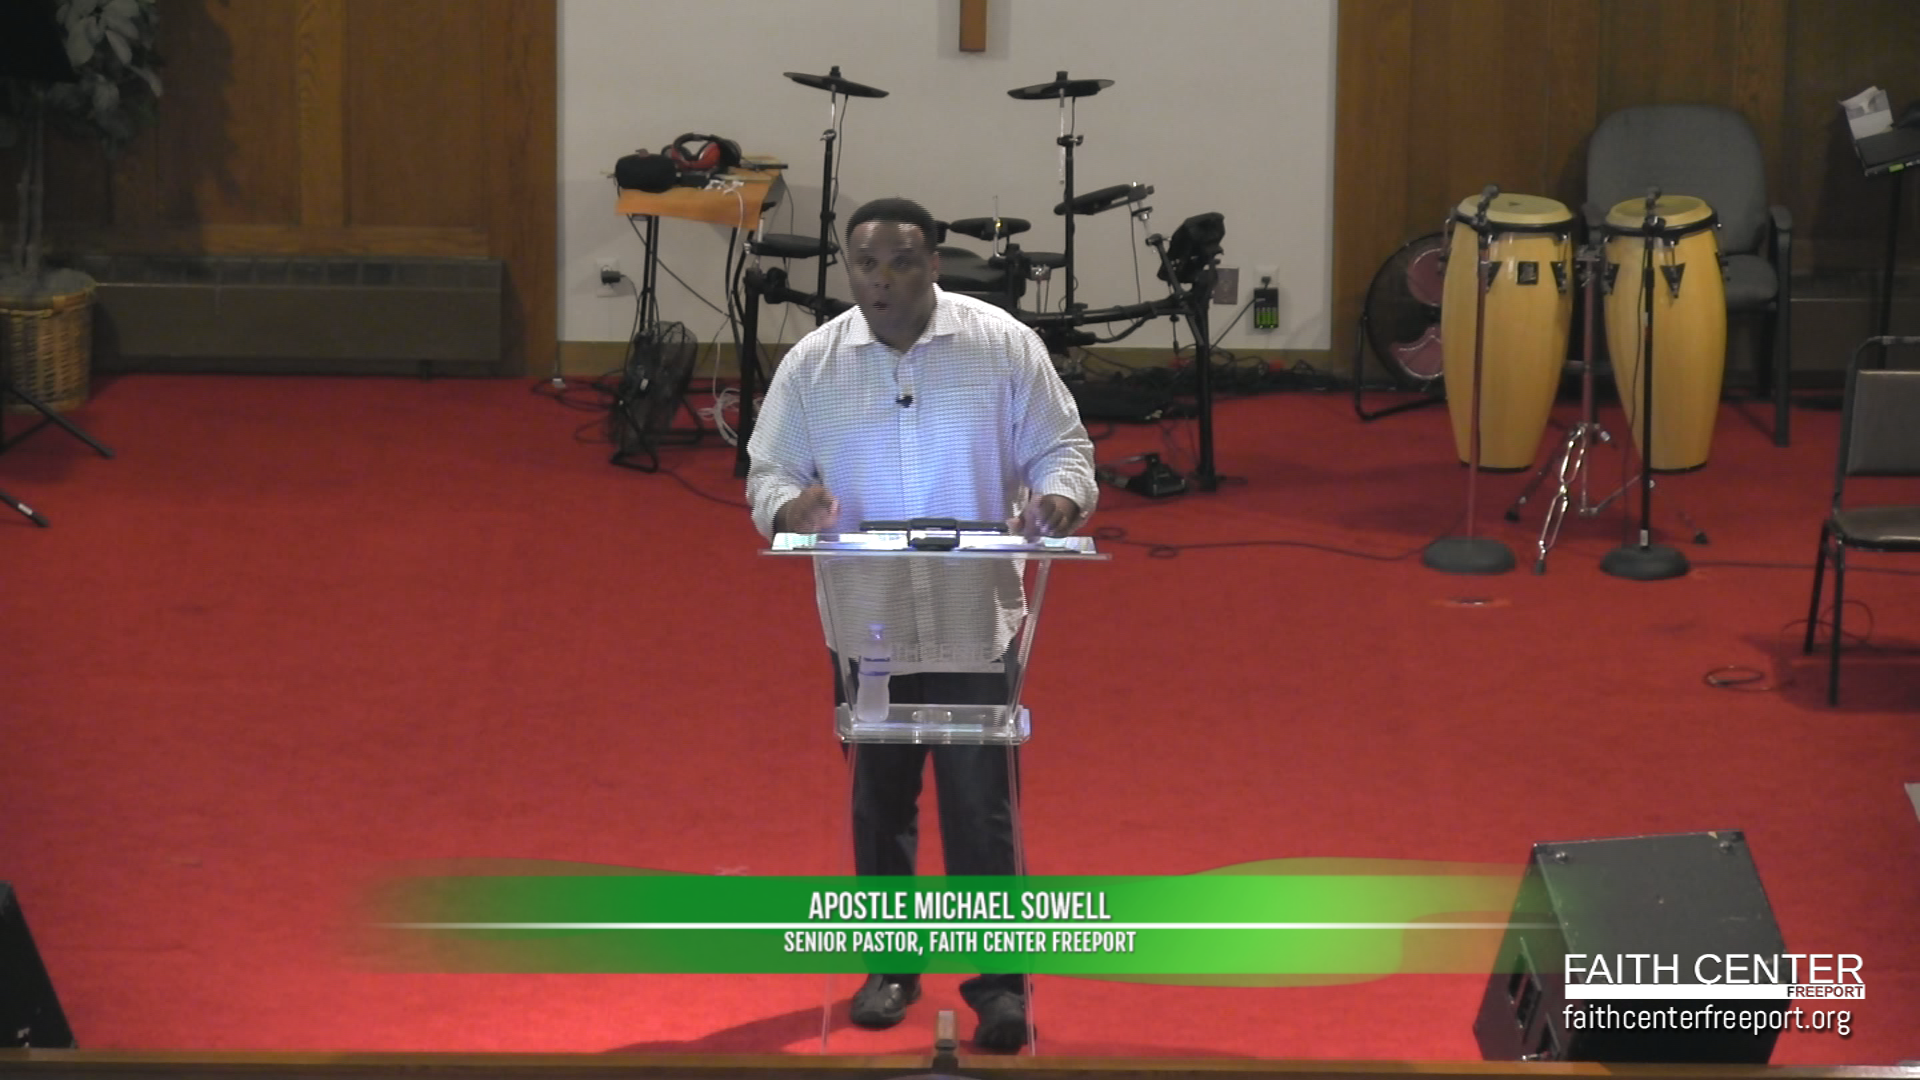 Vision – Apostle Michael Sowell